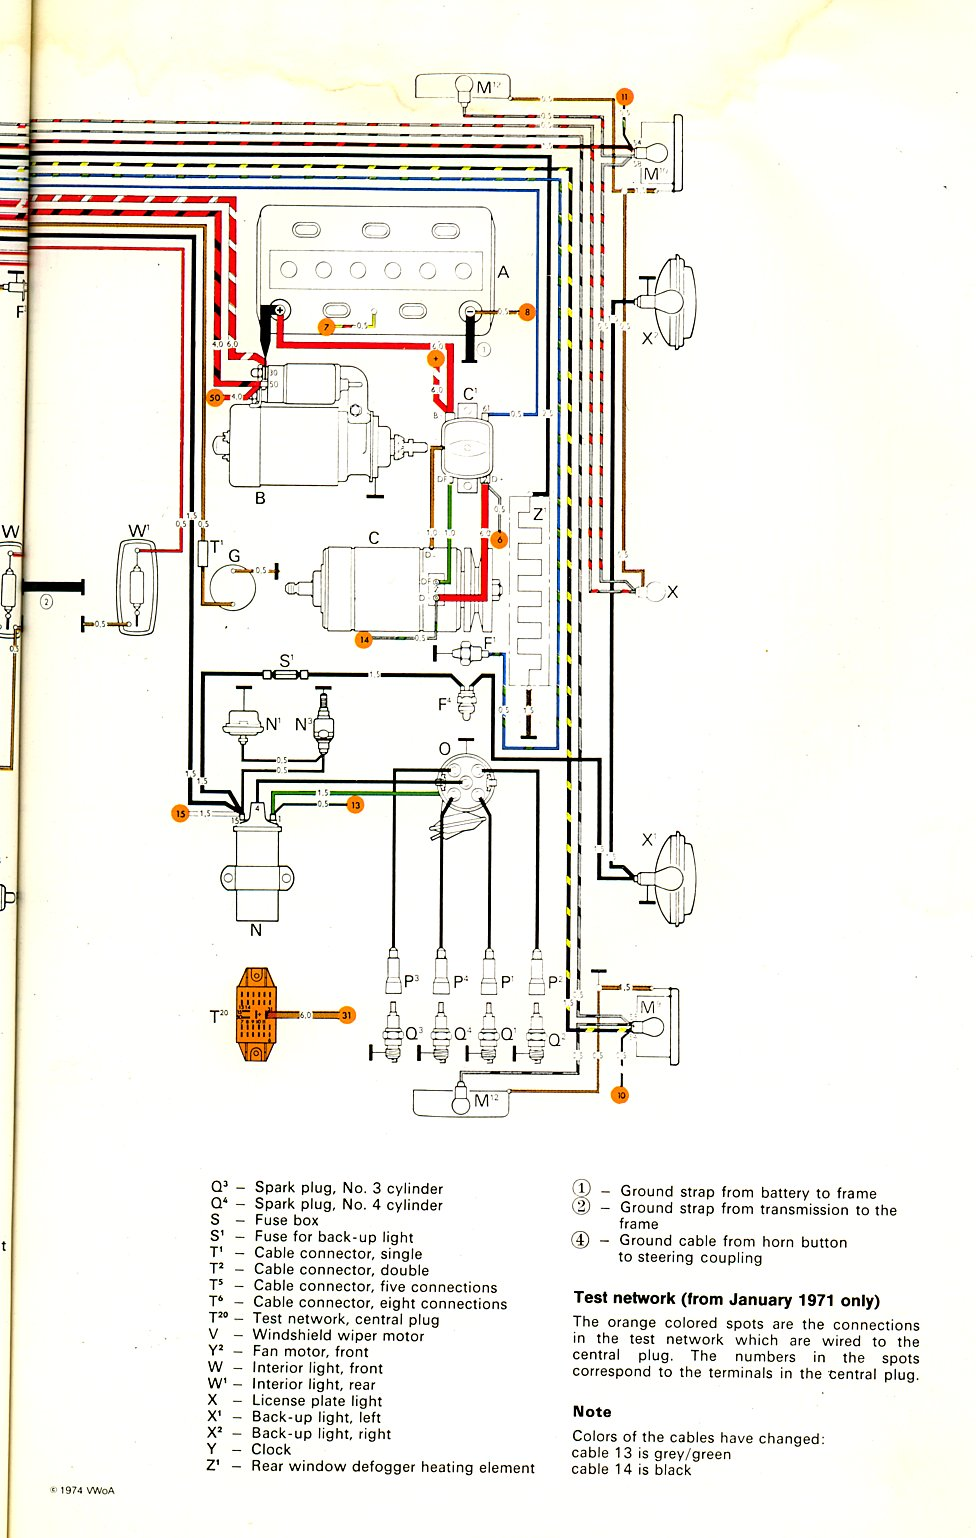 baybus_71b thesamba com type 2 wiring diagrams Rear Defroster Symbol at webbmarketing.co